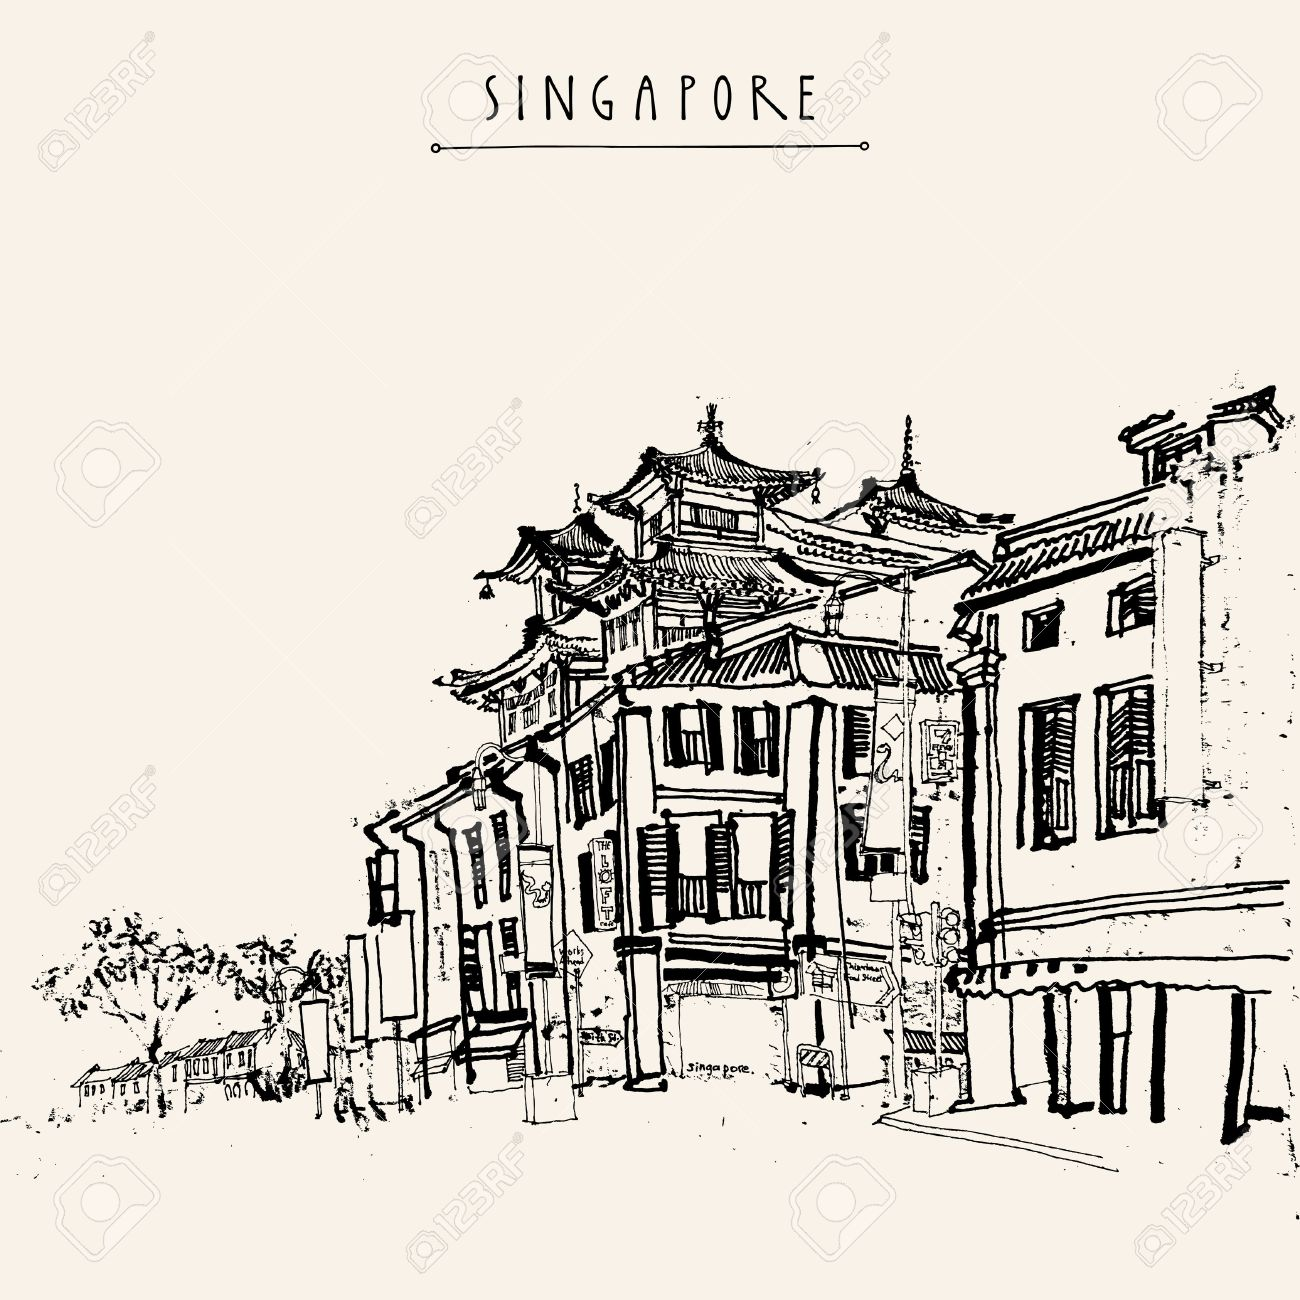 1300x1300 Singapore China Town Drawing. Vintage Travel Postcard Or Poster